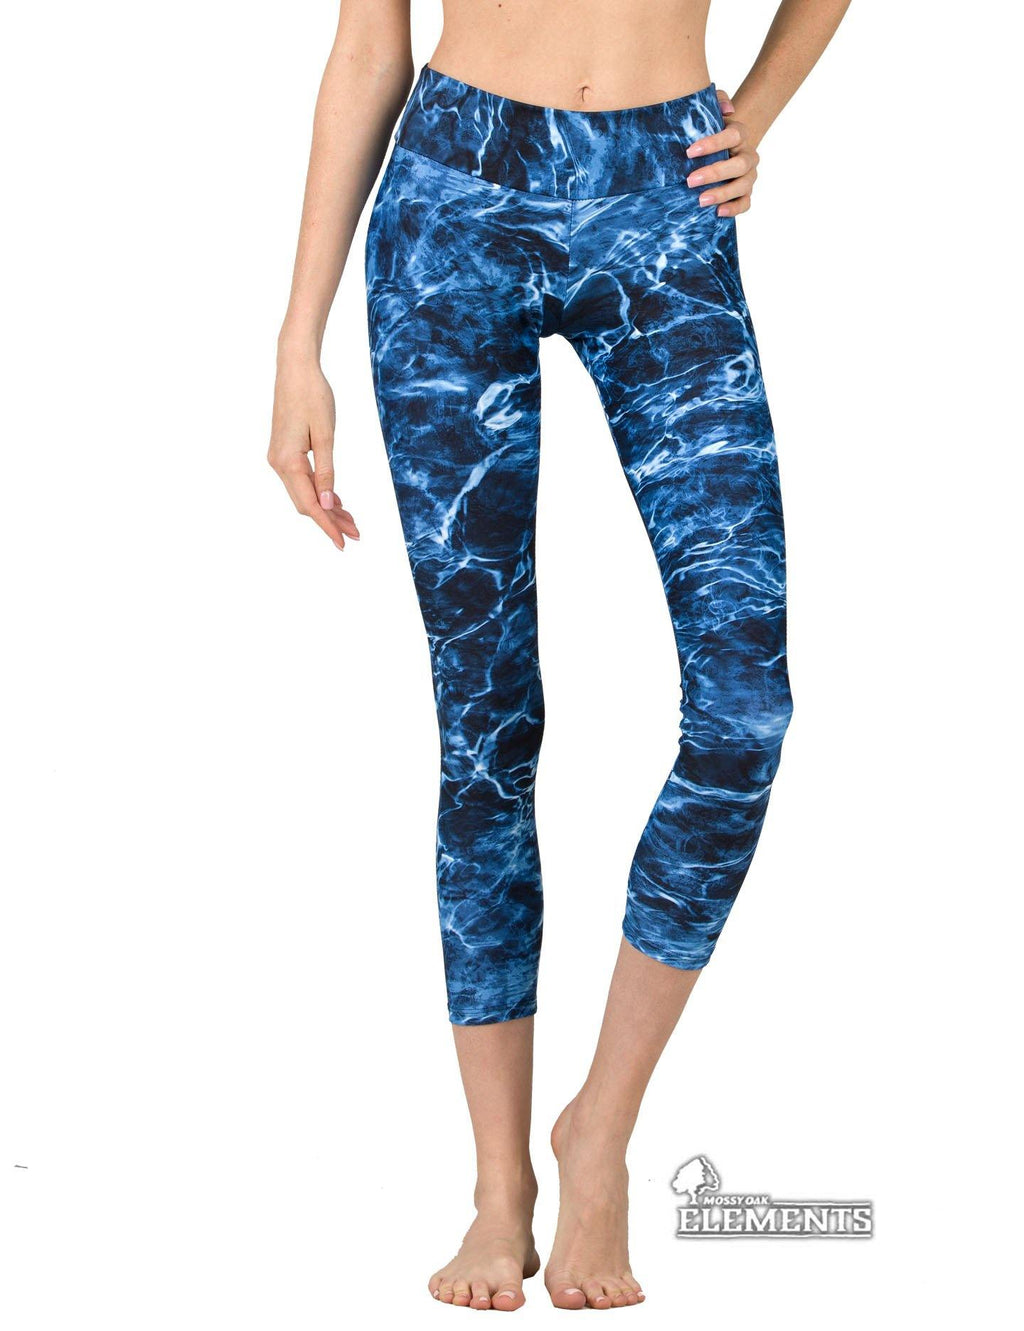 Apsara Leggings Low Waist Cropped, Mossy Oak Elements Marlin